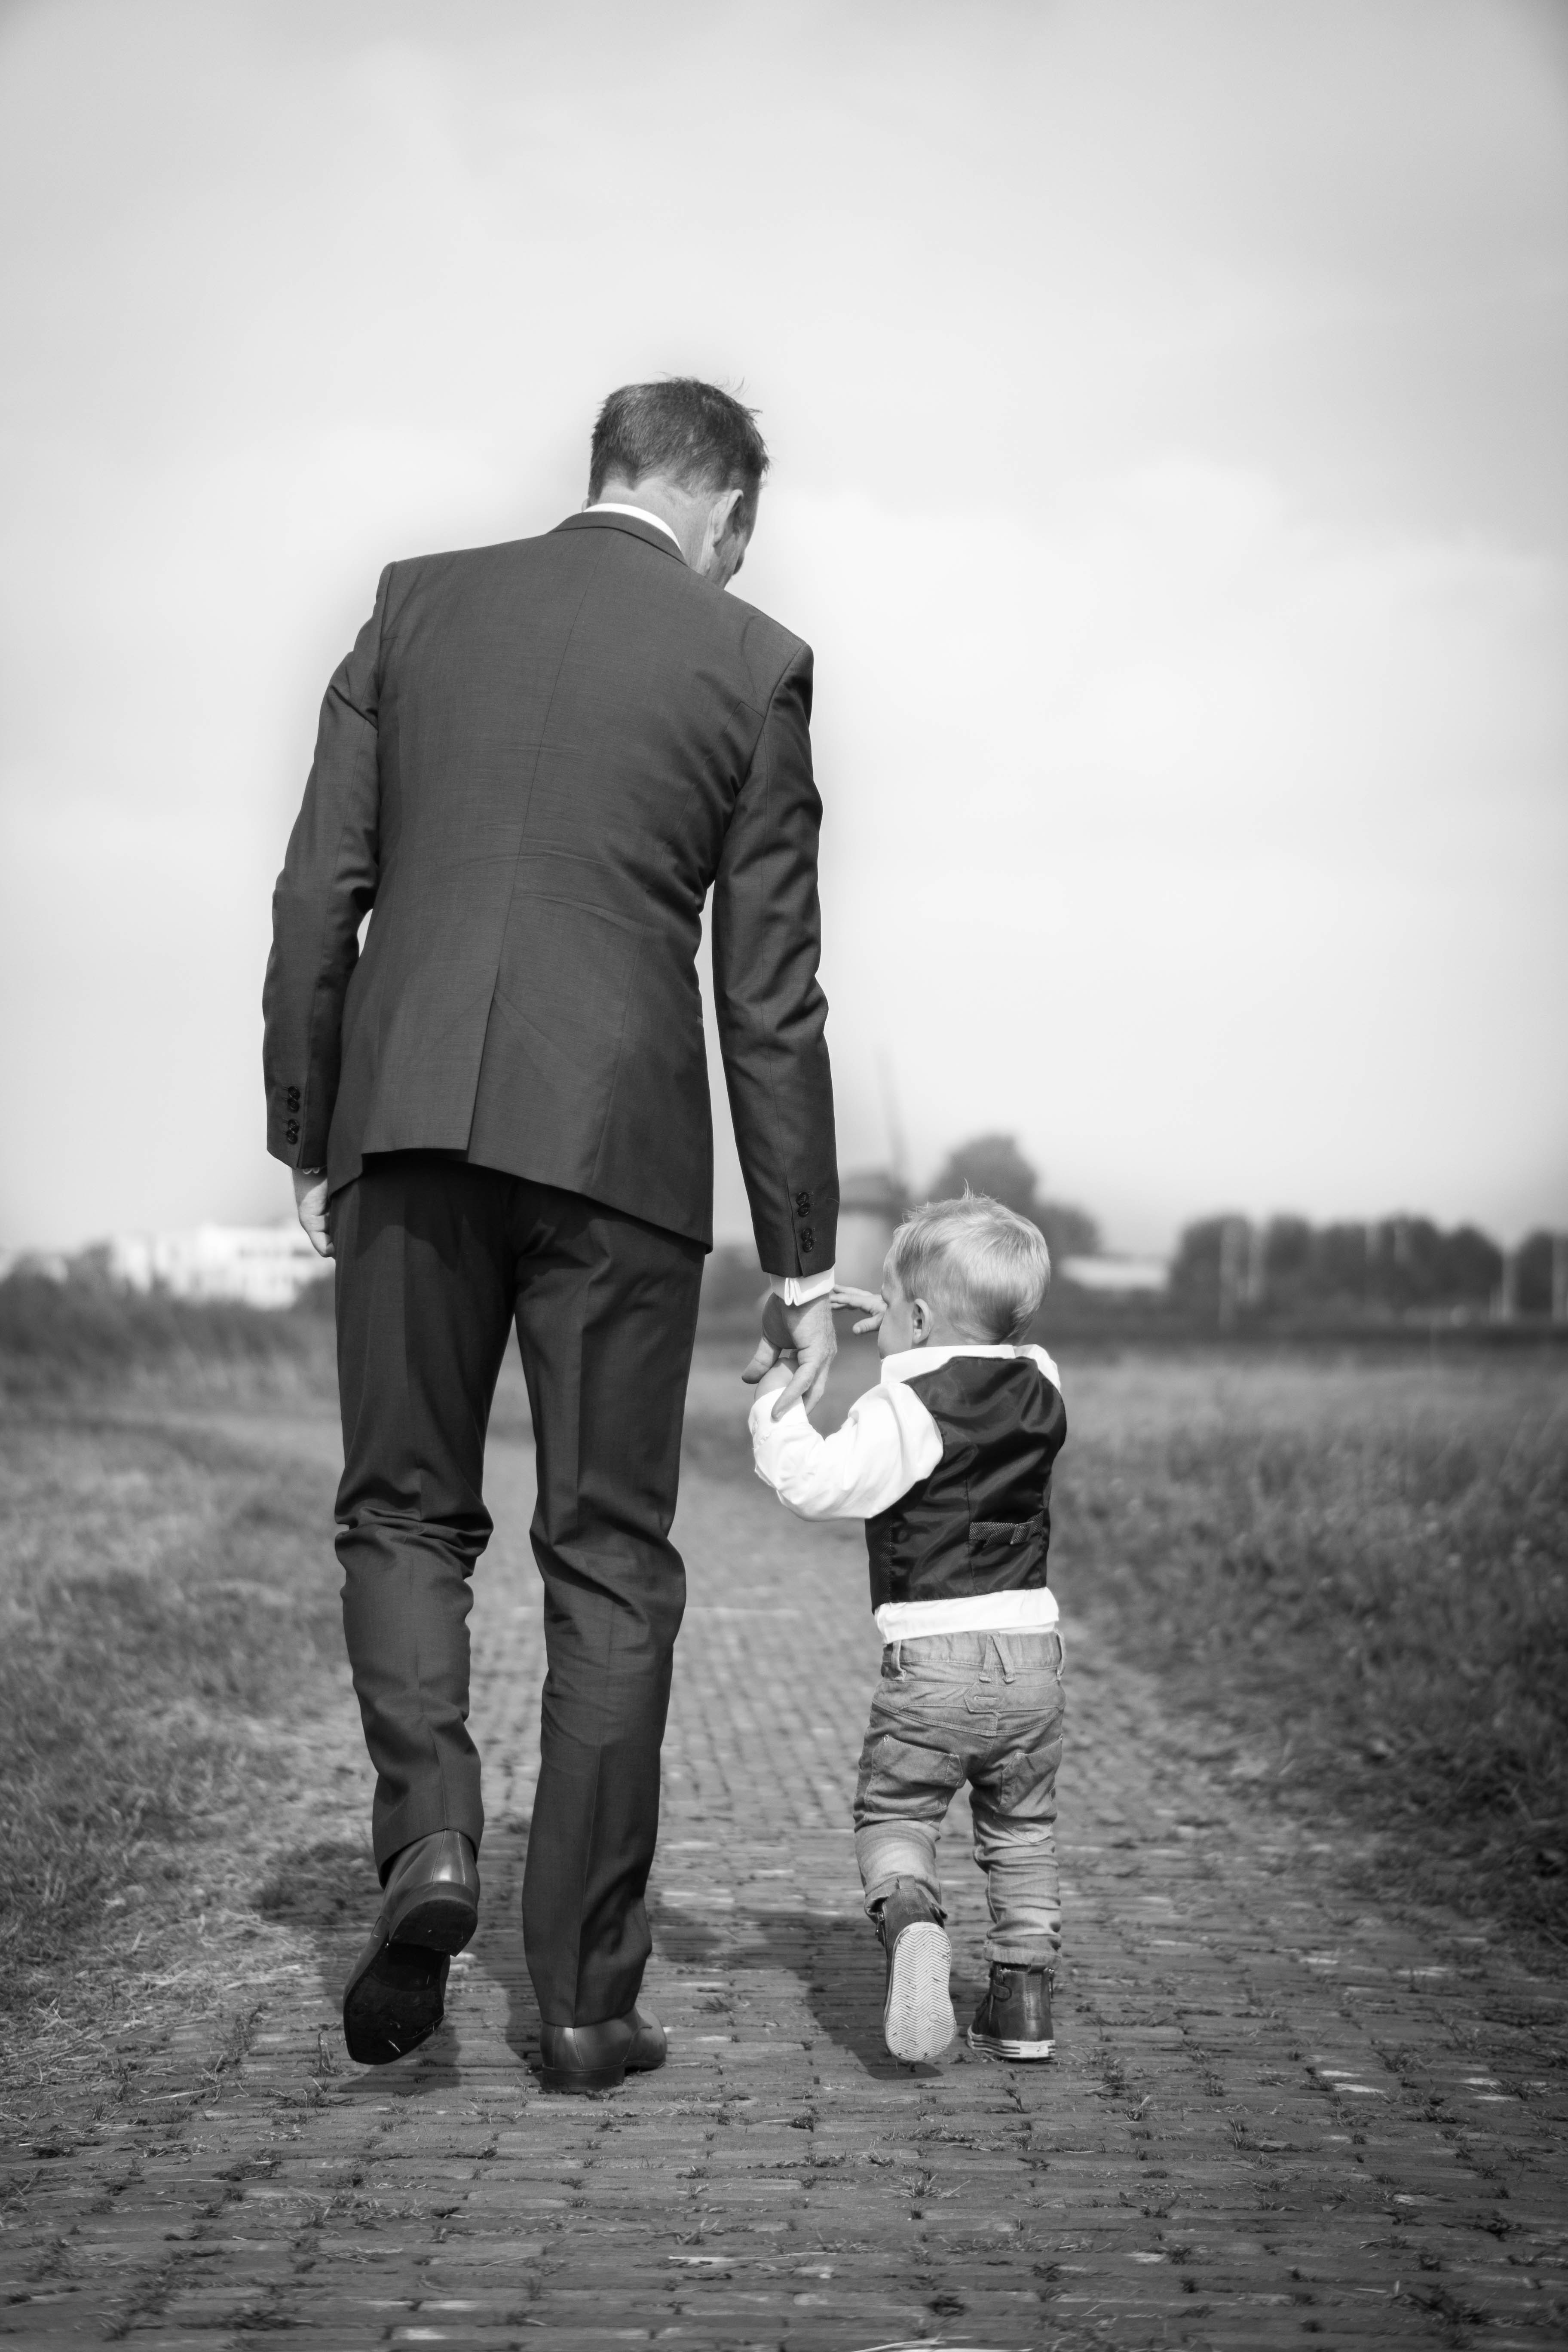 This was a great moment on the wedding day of this men. We were doing the wedding shoot and as his son became more tired from all the exitement he decided to take him for a short walk. This moment, that seems both fragile and steady, is something that I am greatful for having caught through my lens.